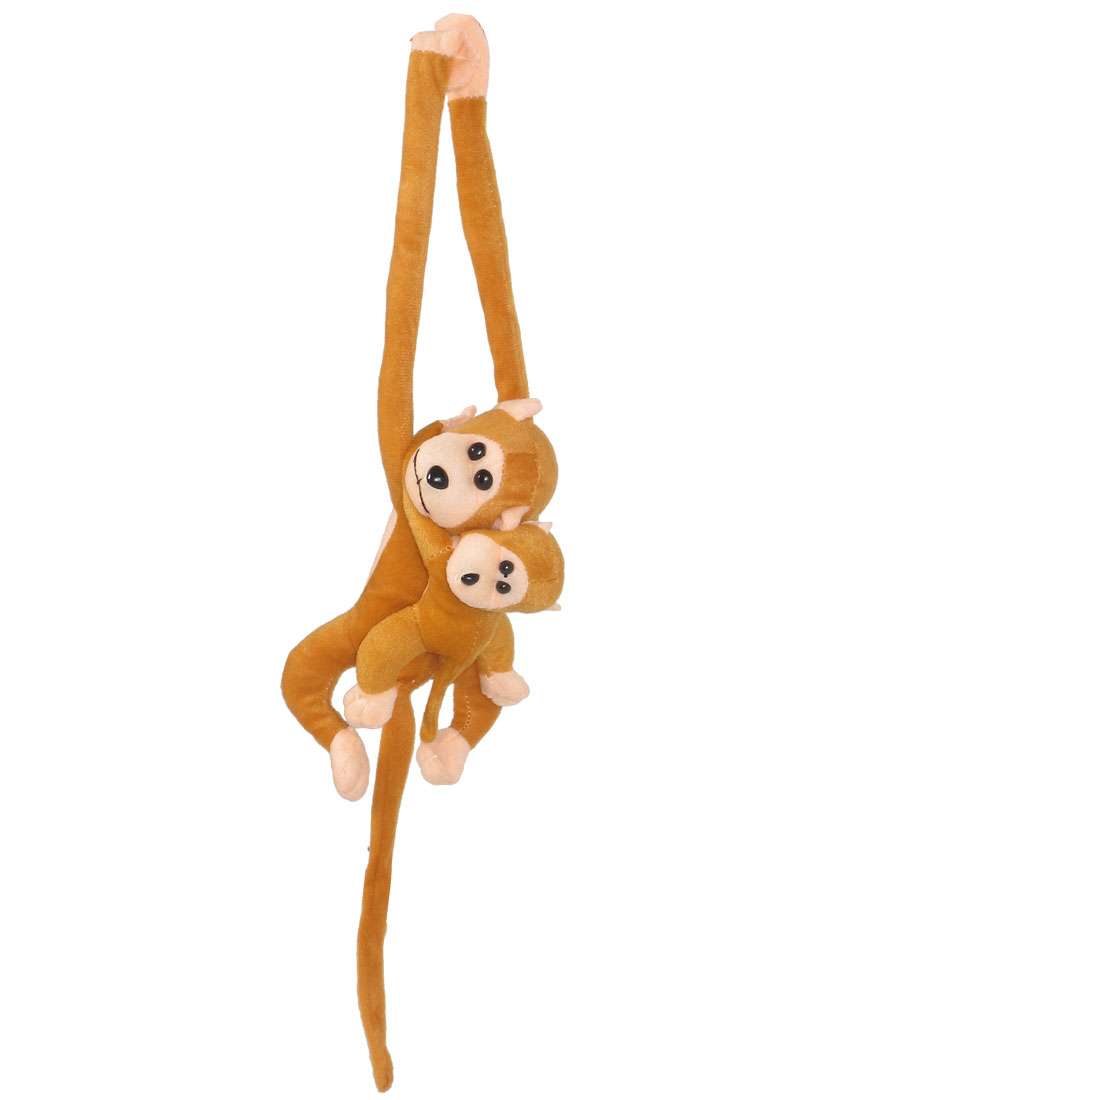 Gold Tone Plush Long Arms Two Scented Monkey Toy w Cry Sound